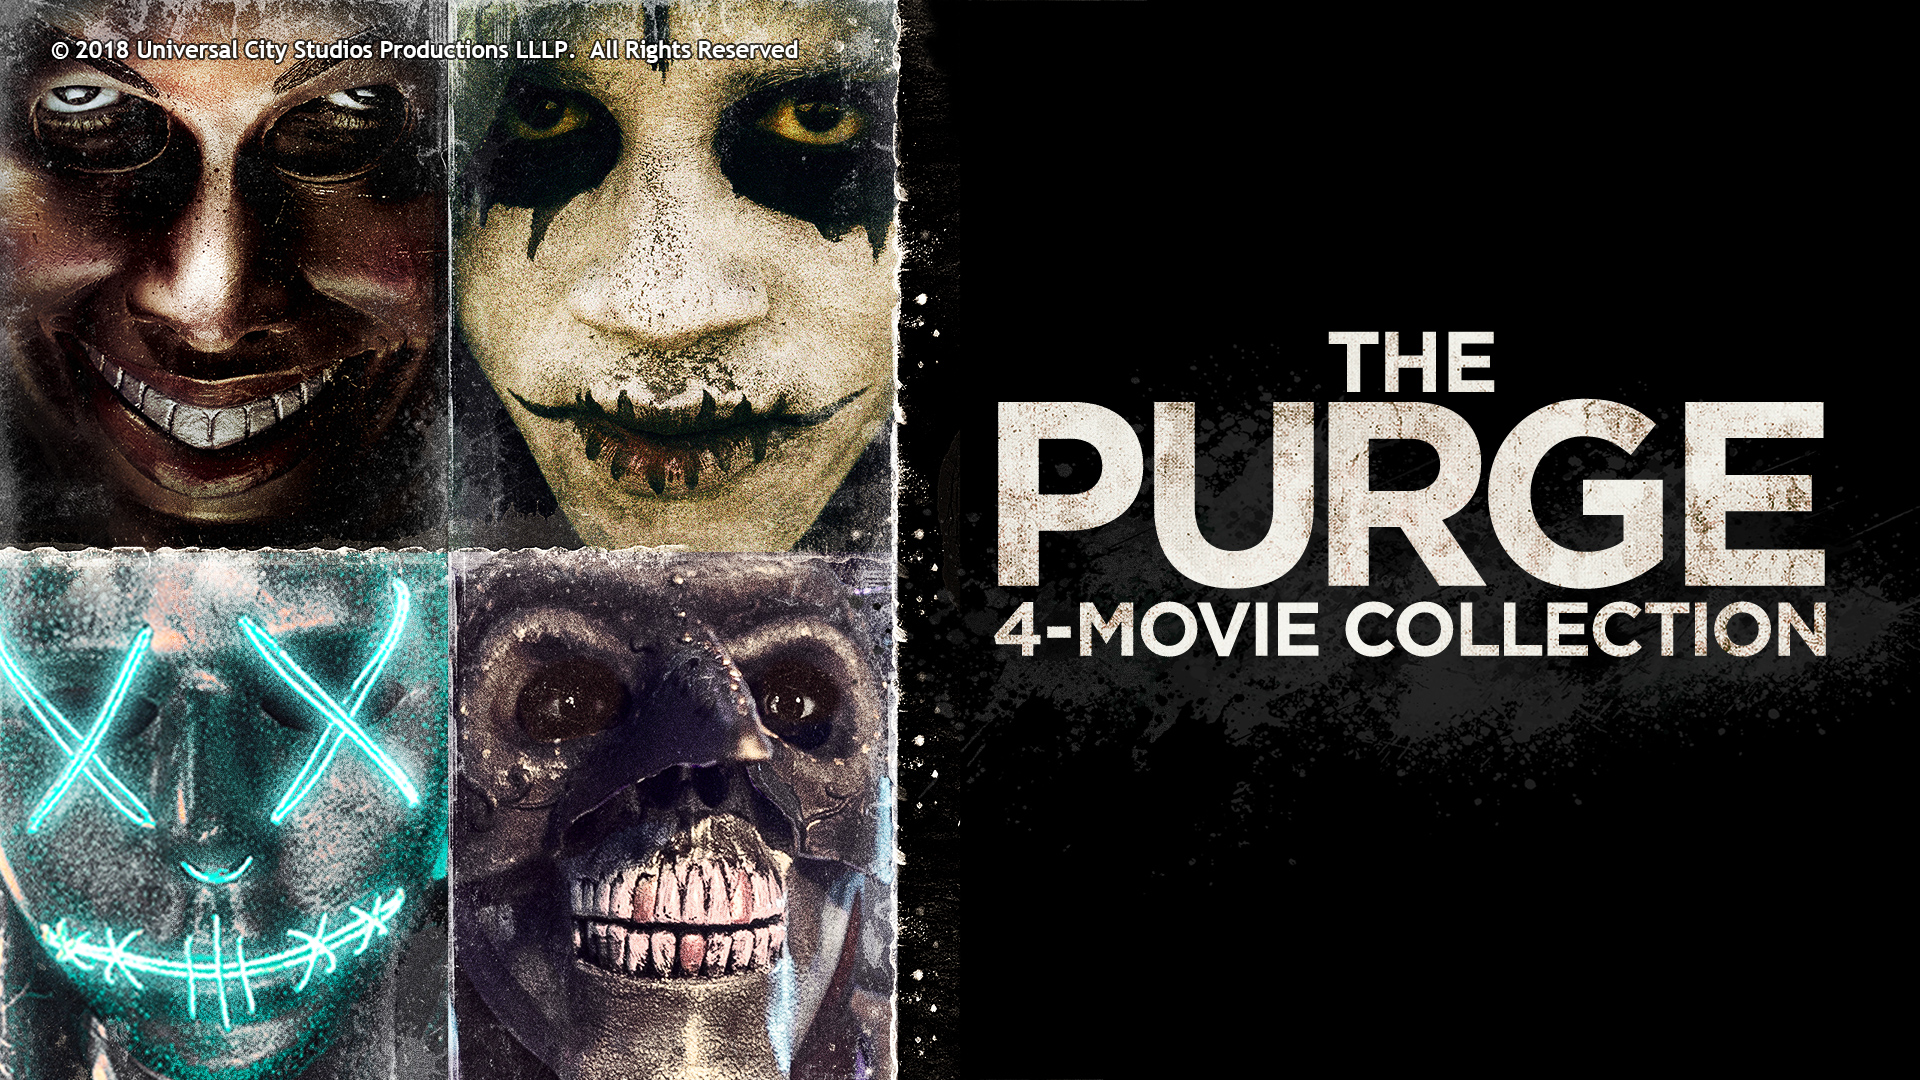 THE PURGE 4-MOVIE COLLECTION